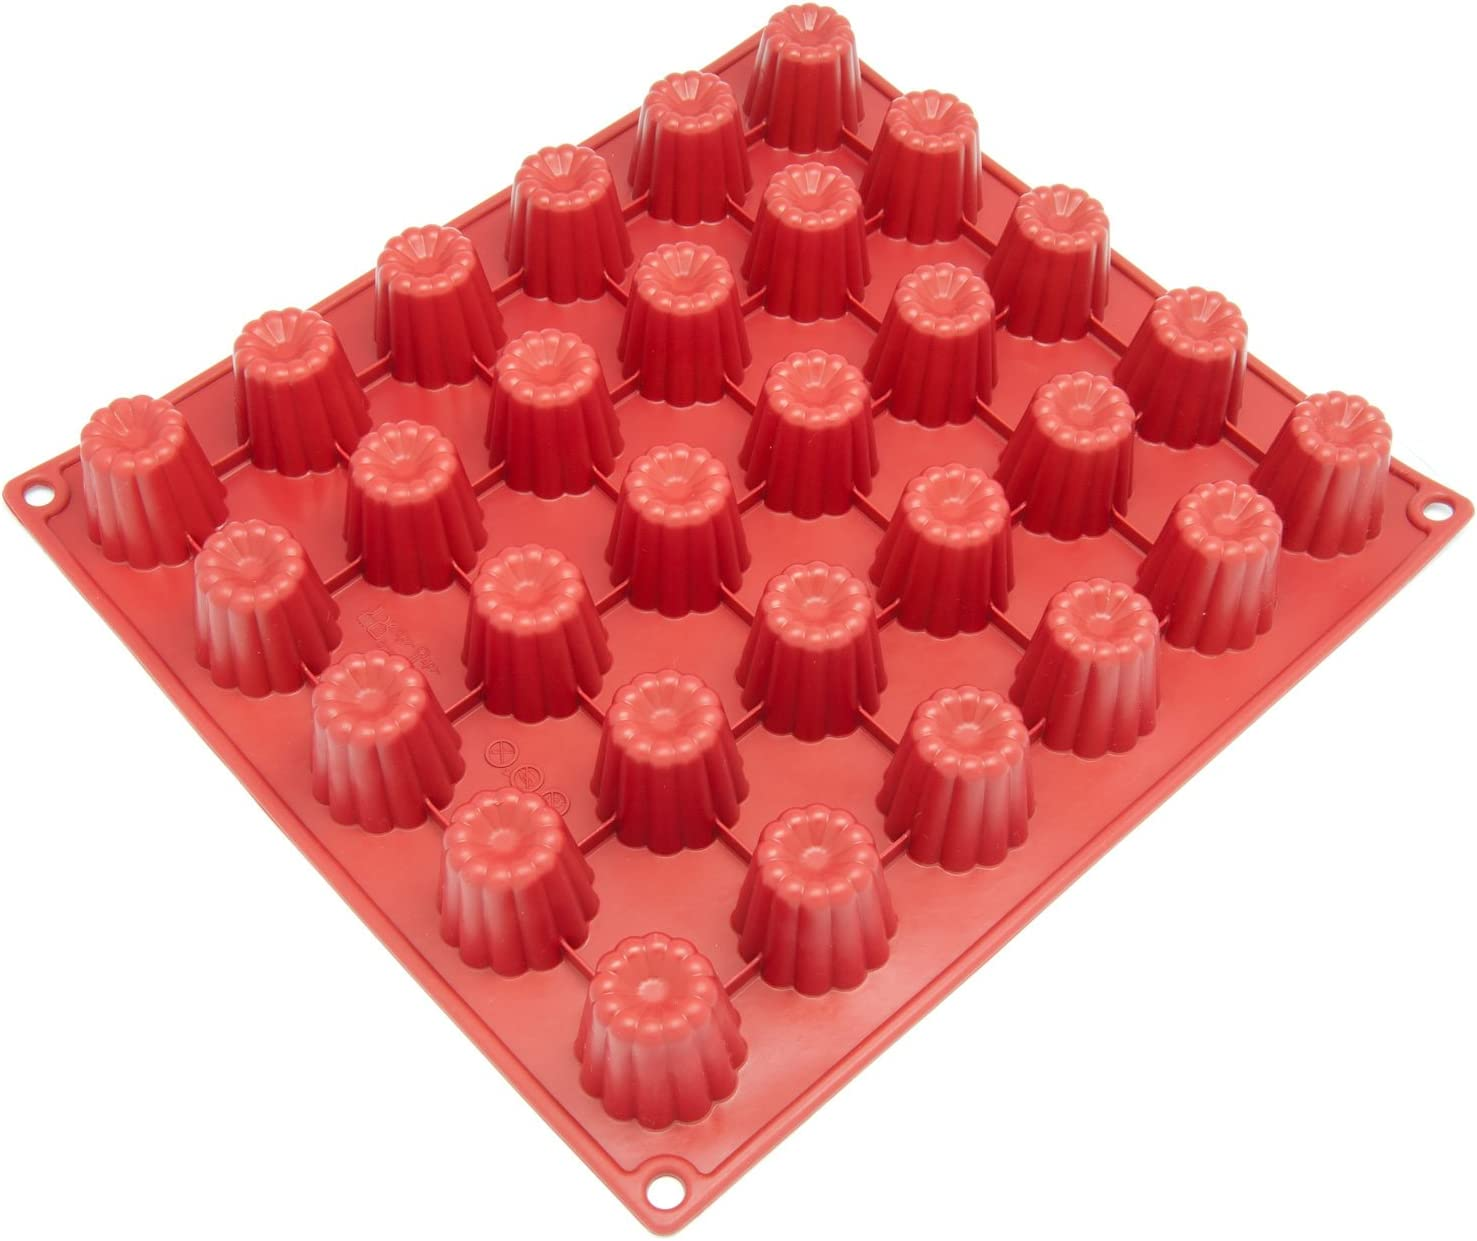 Red Freshware CB-113RD 30-Cavity Mini Silicone Mold for Caneles and Bordelais Fluted Cakes